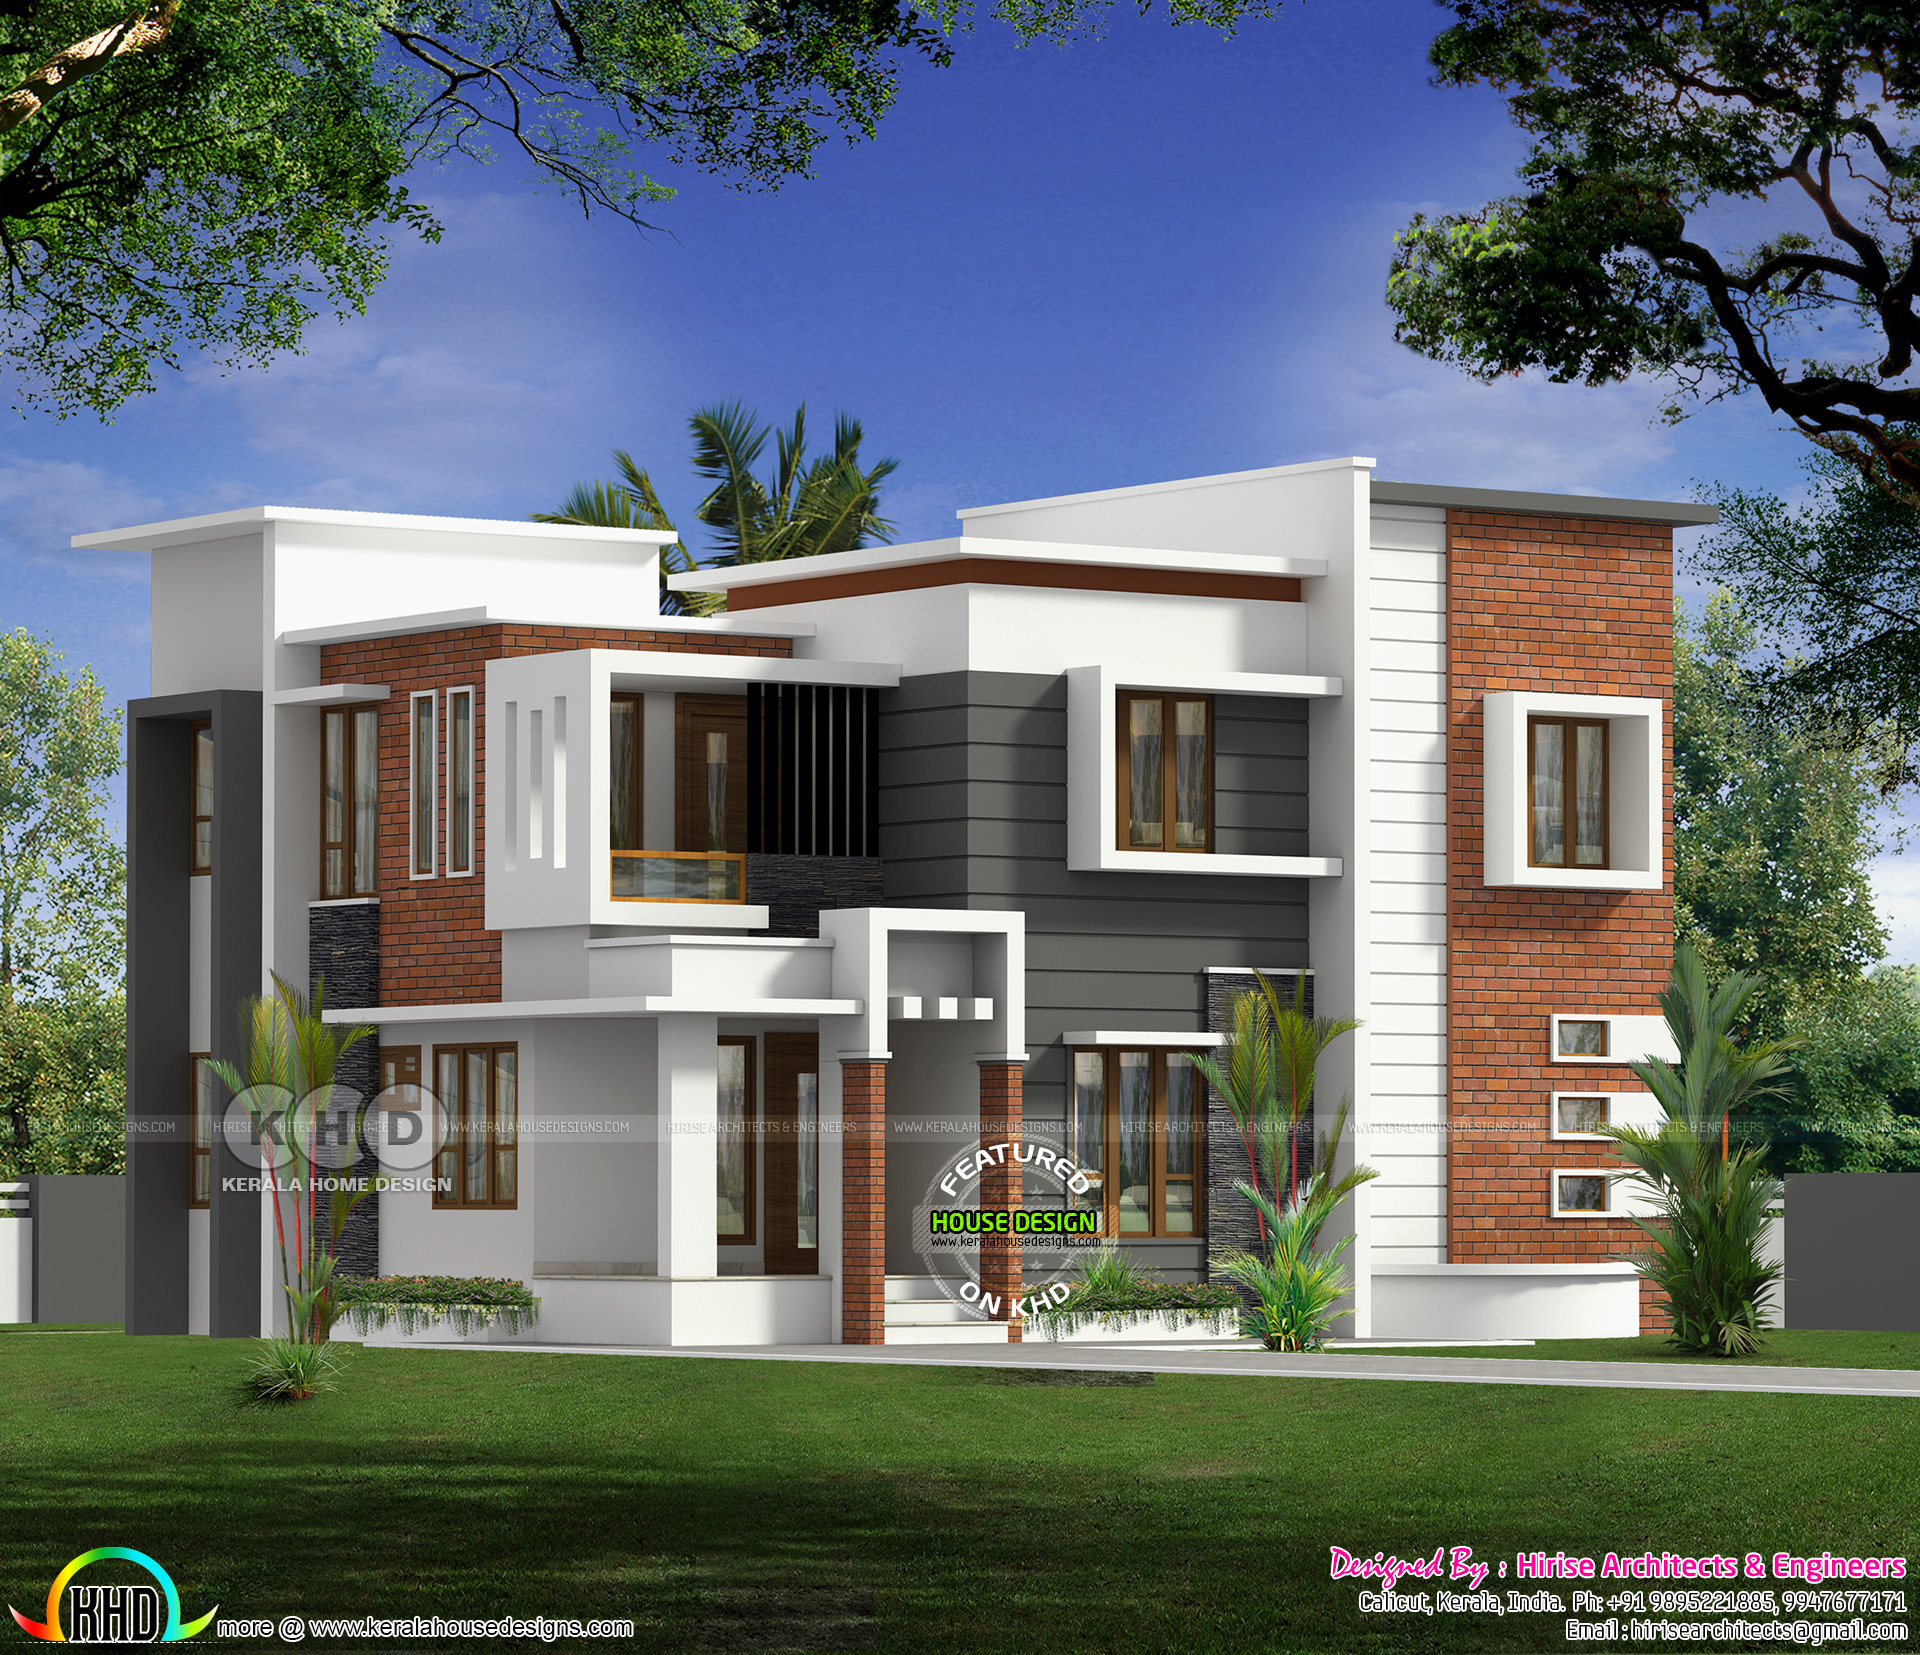 Flat Roof Modern 4 Bedroom House In 2250 Sq Ft Kerala Home Design And Floor Plans 8000 Houses